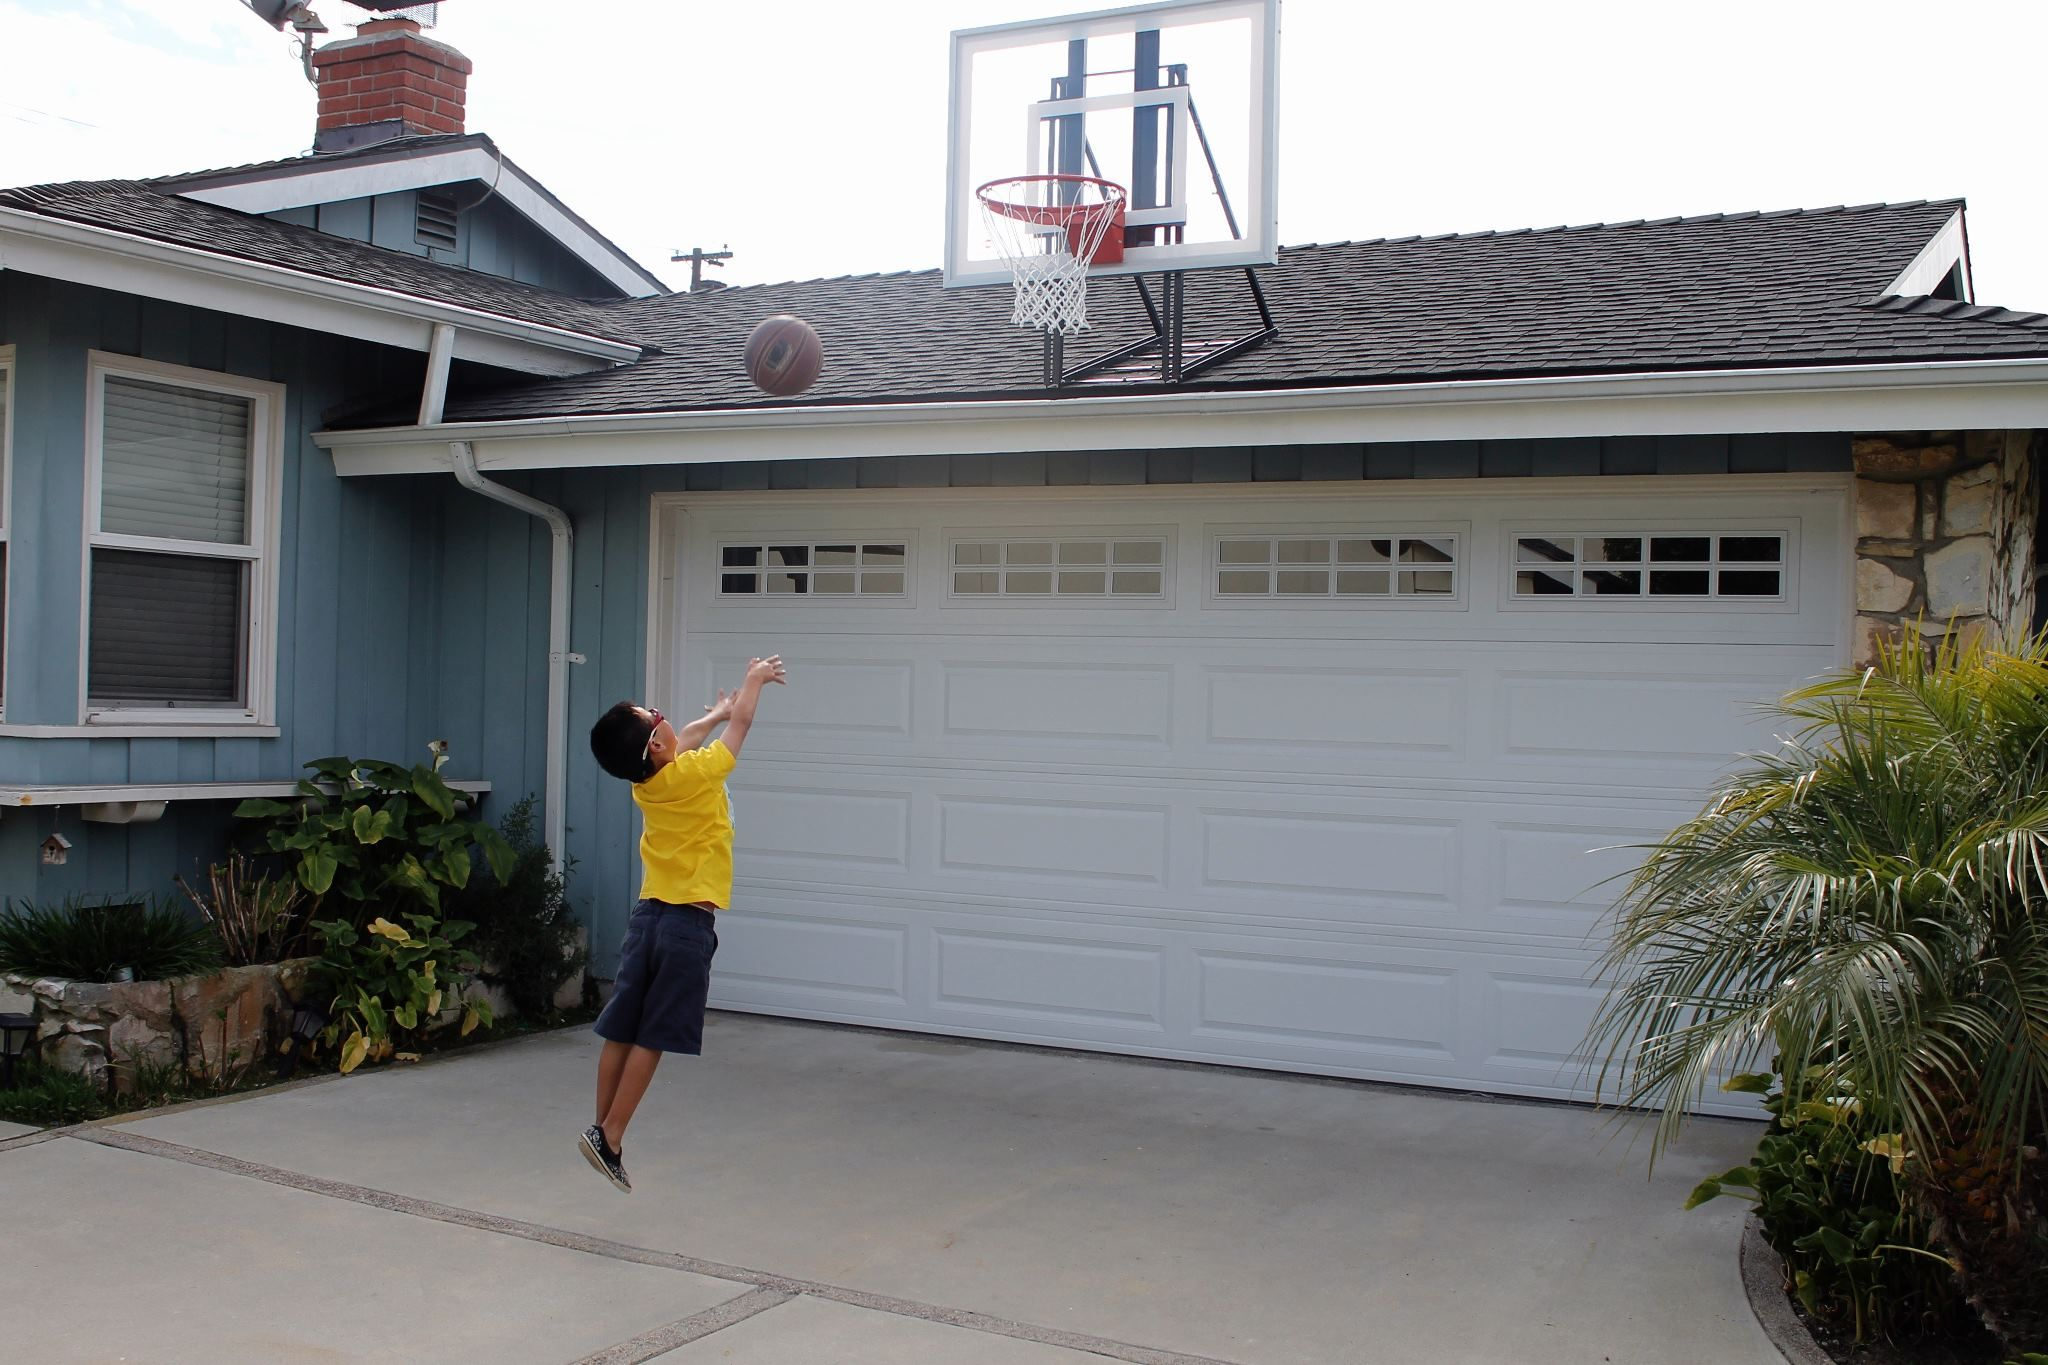 The Roof King Gold basketball hoop is mounted to a typical looking ...